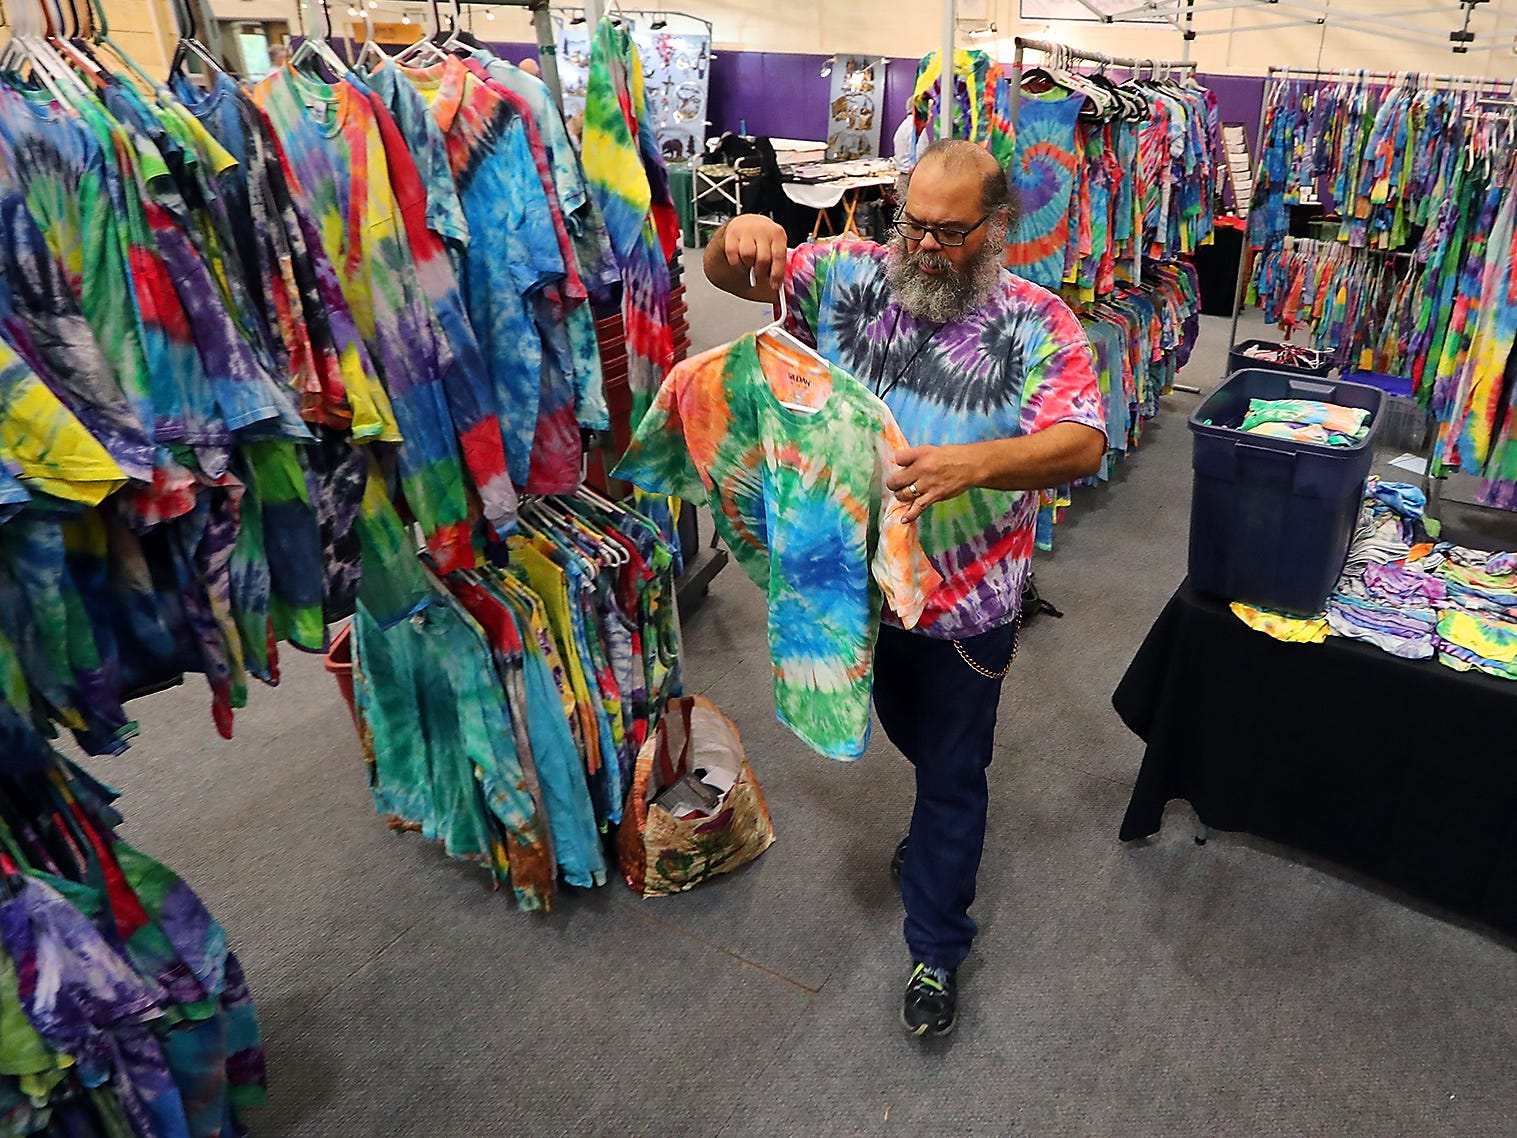 Peter Simon, of Everett, hangs up a tie-dyed shirt in his To Dye For booth during the NK Holiday Fest at North Kitsap High School Saturday. The annual event kicks off the holiday bazaar season featuring crafts, arts, food, gifts and more. The event continues Sunday from 11 a.m. until 4 p.m. Admission is $5, but children 10 and younger are free.